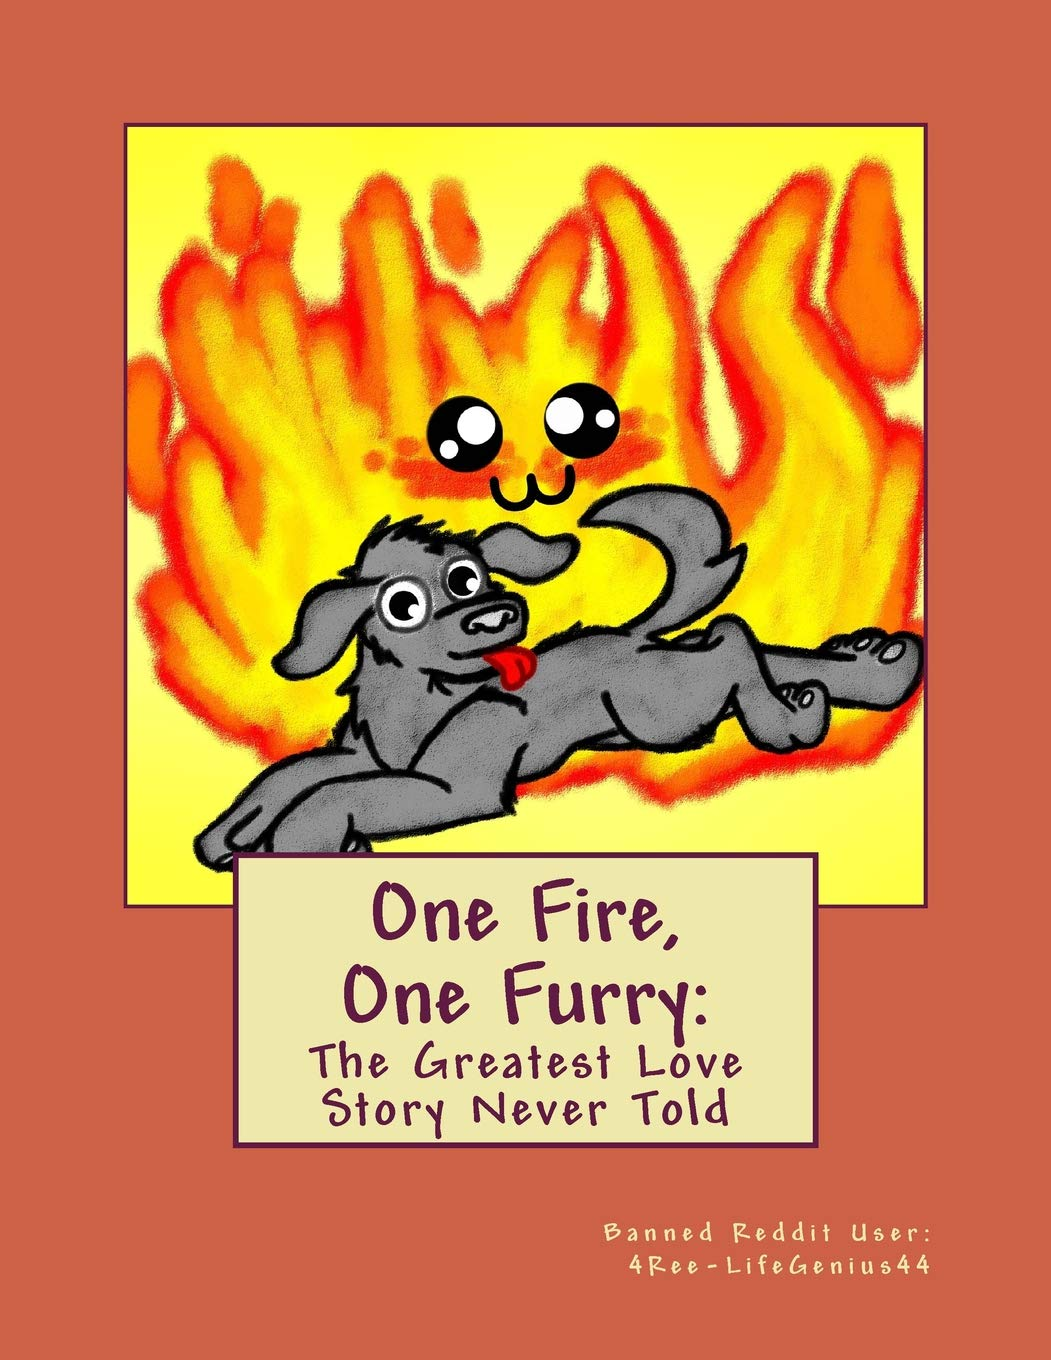 One Fire, One Furry: The Greatest Love Story Never Told: Banned